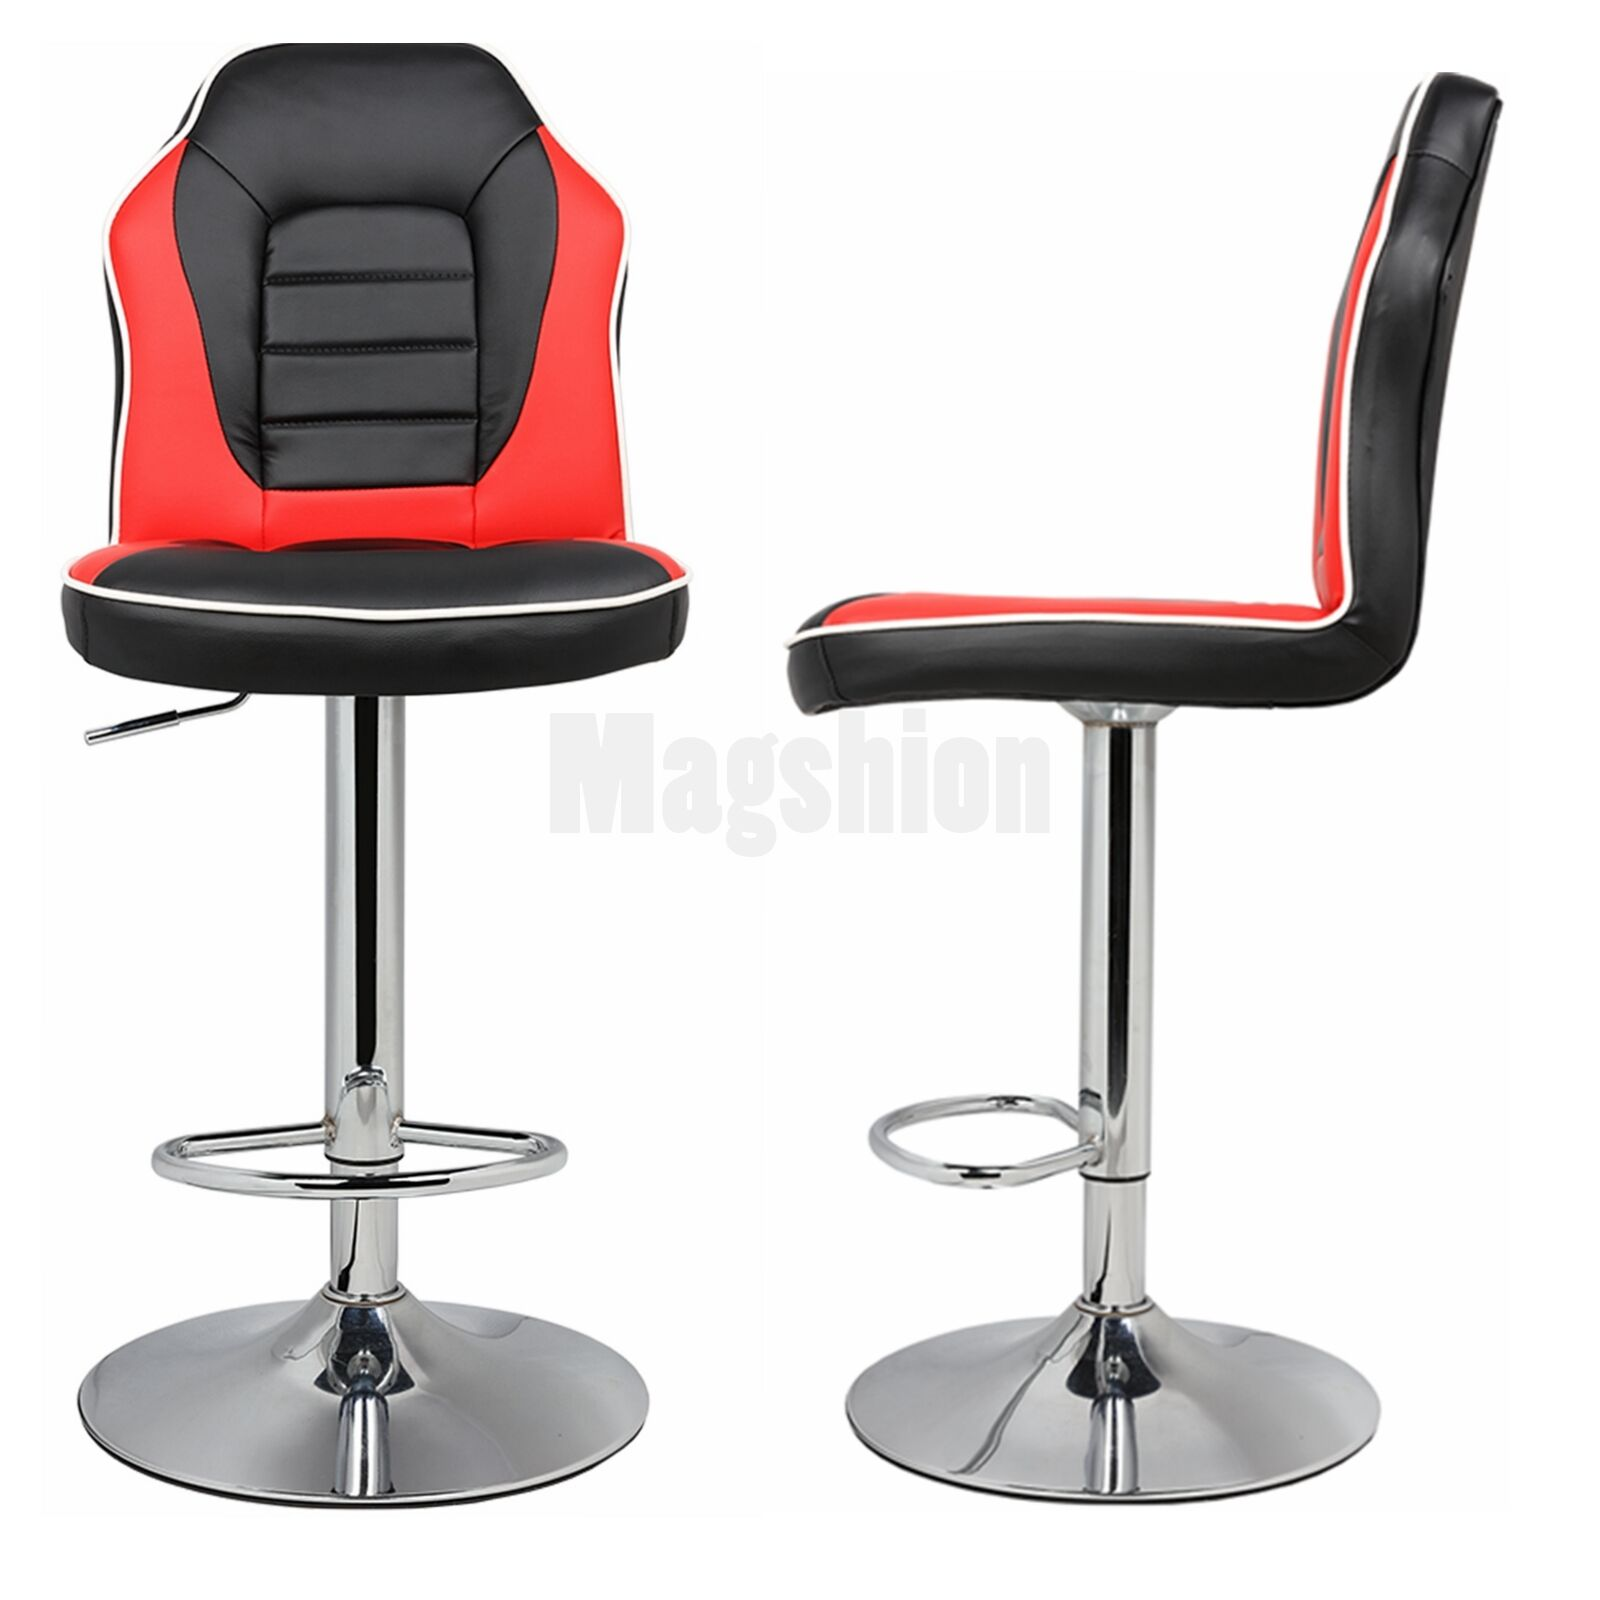 Modern Racing Seat Bar Stools Chair Adjustable Swivel